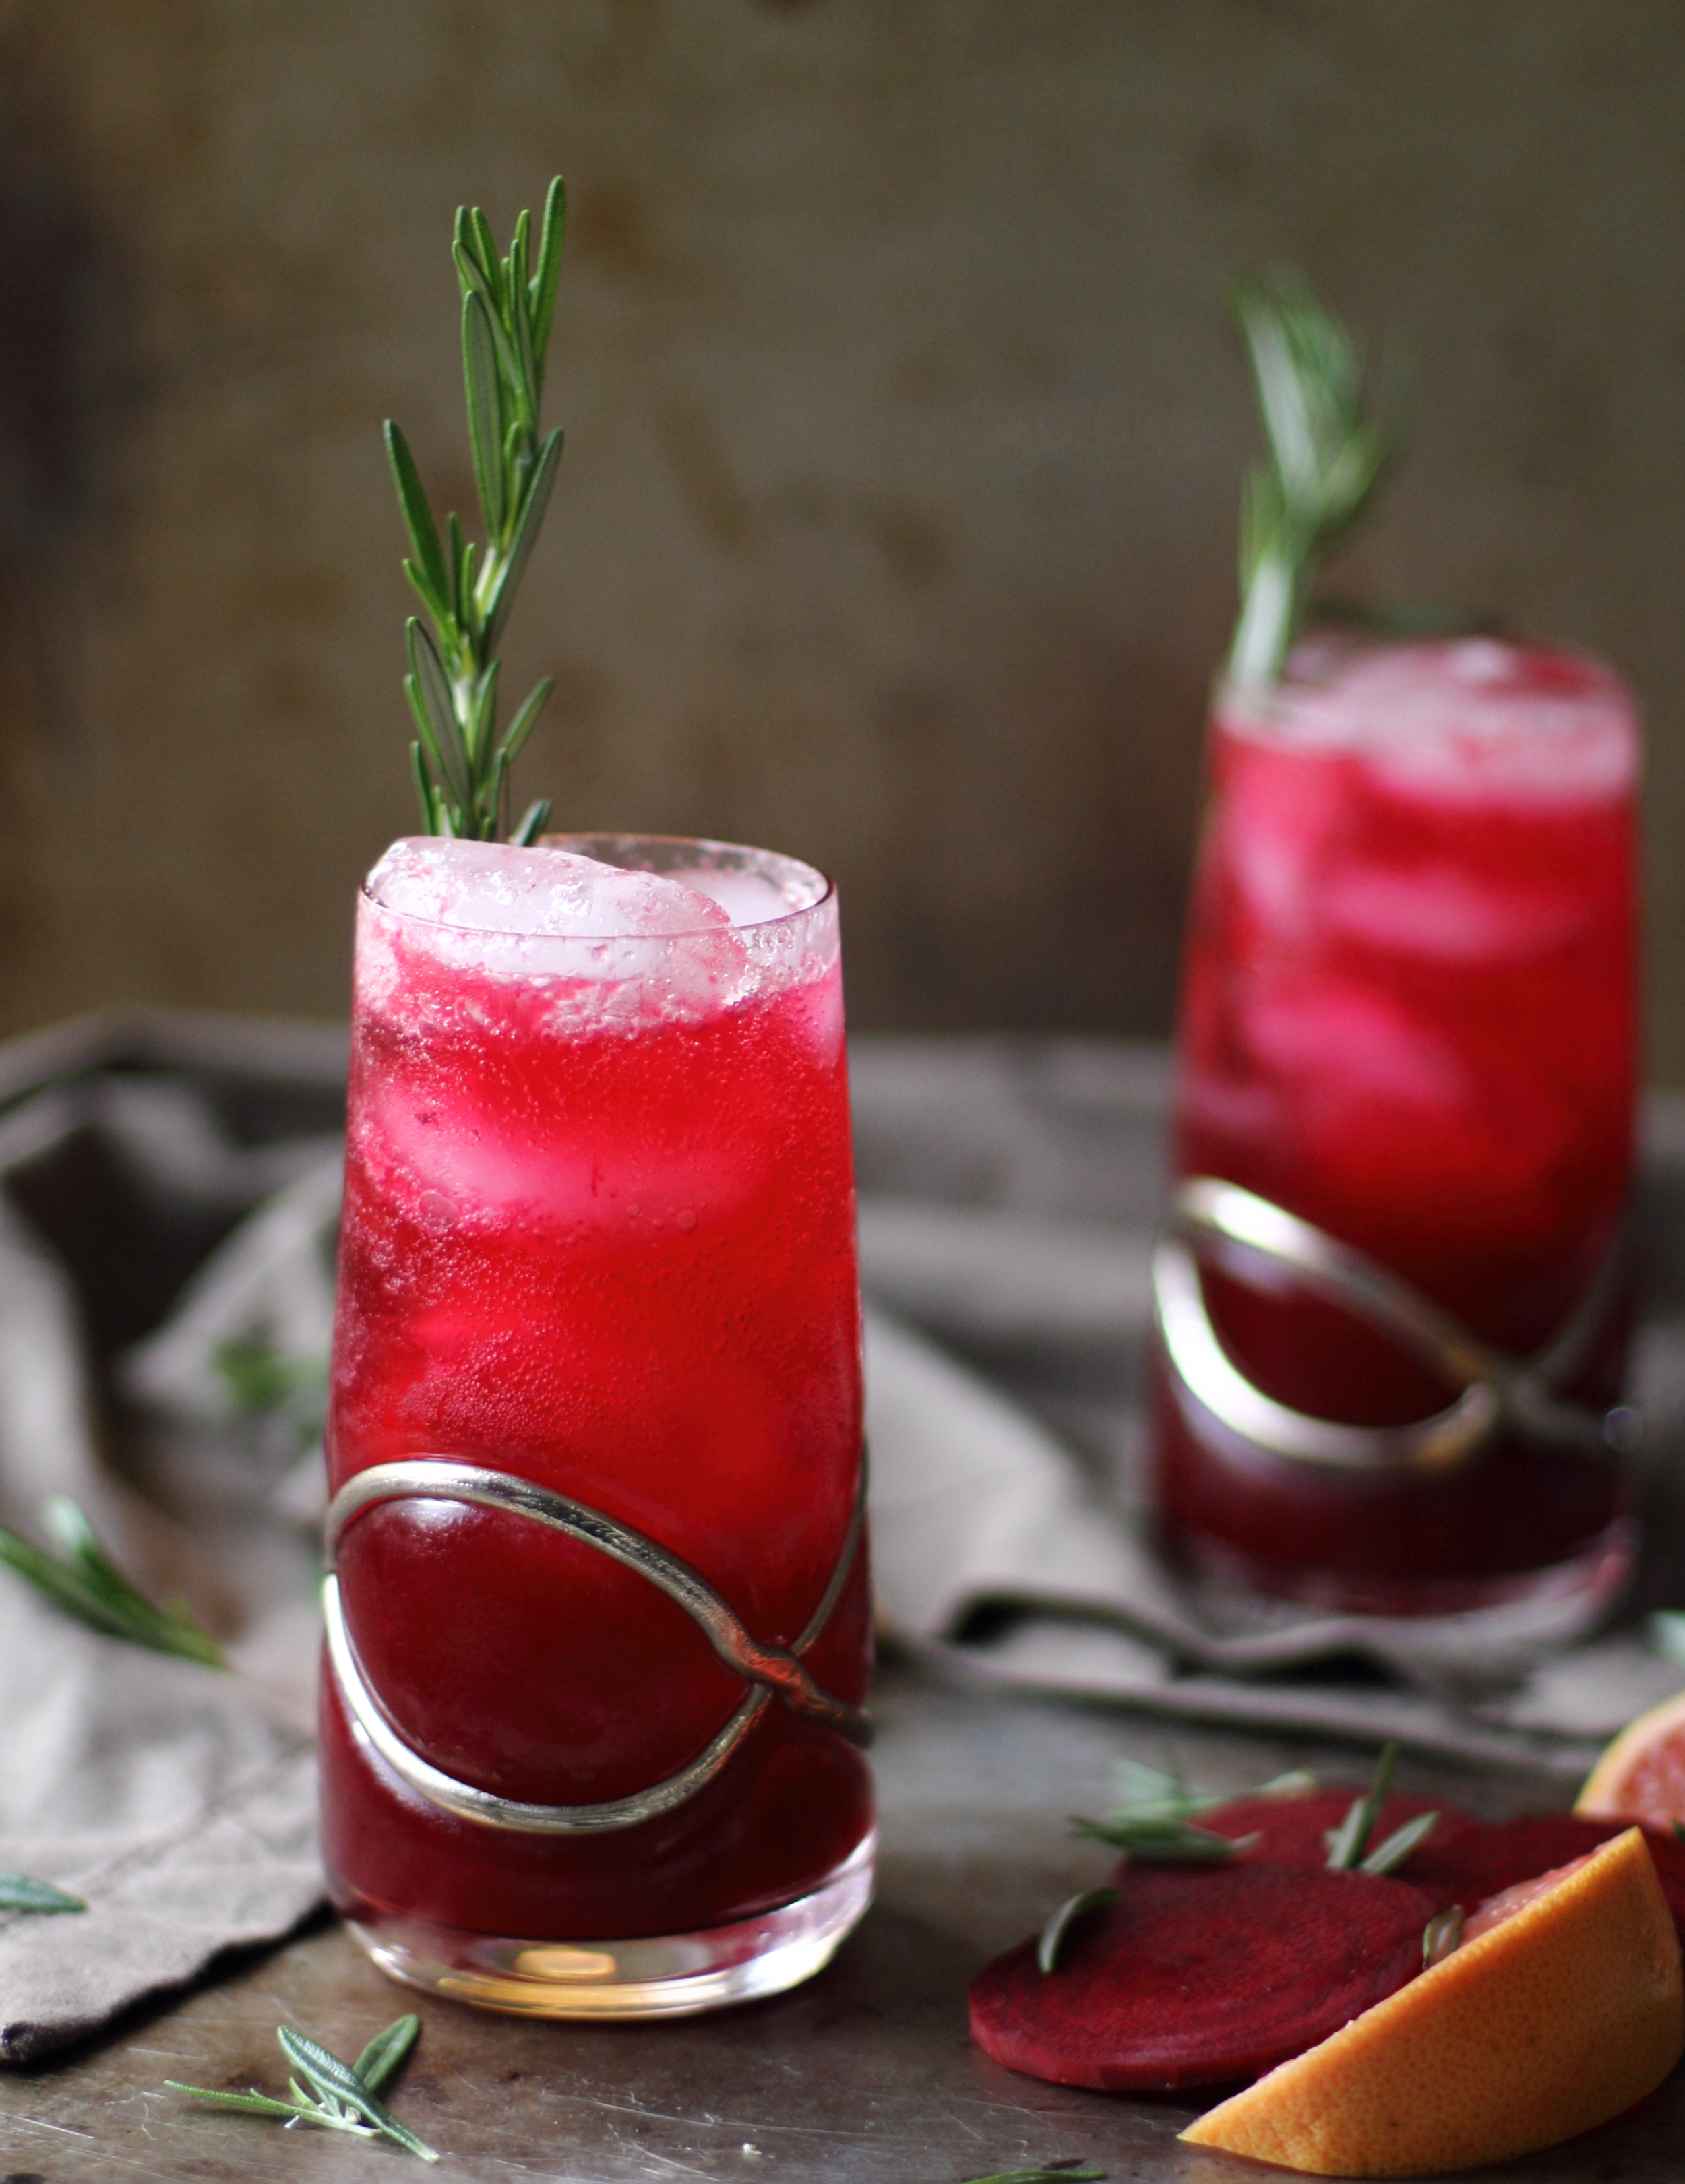 The Beet Twist: My Diary of Us